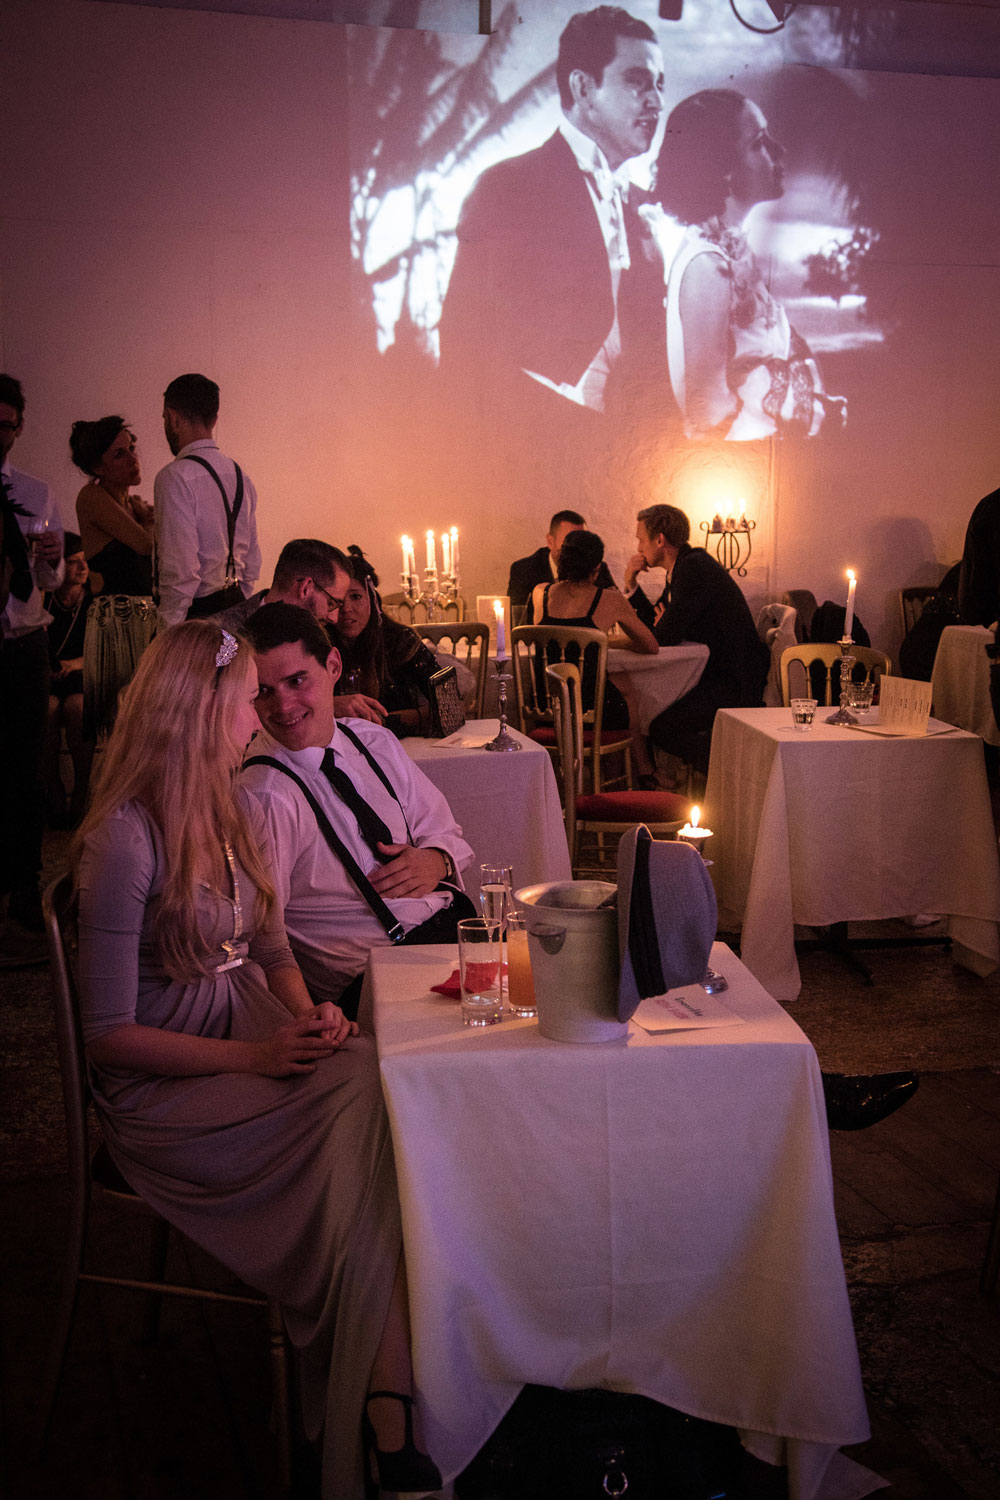 Couple at a dinner table with movie projection in the background